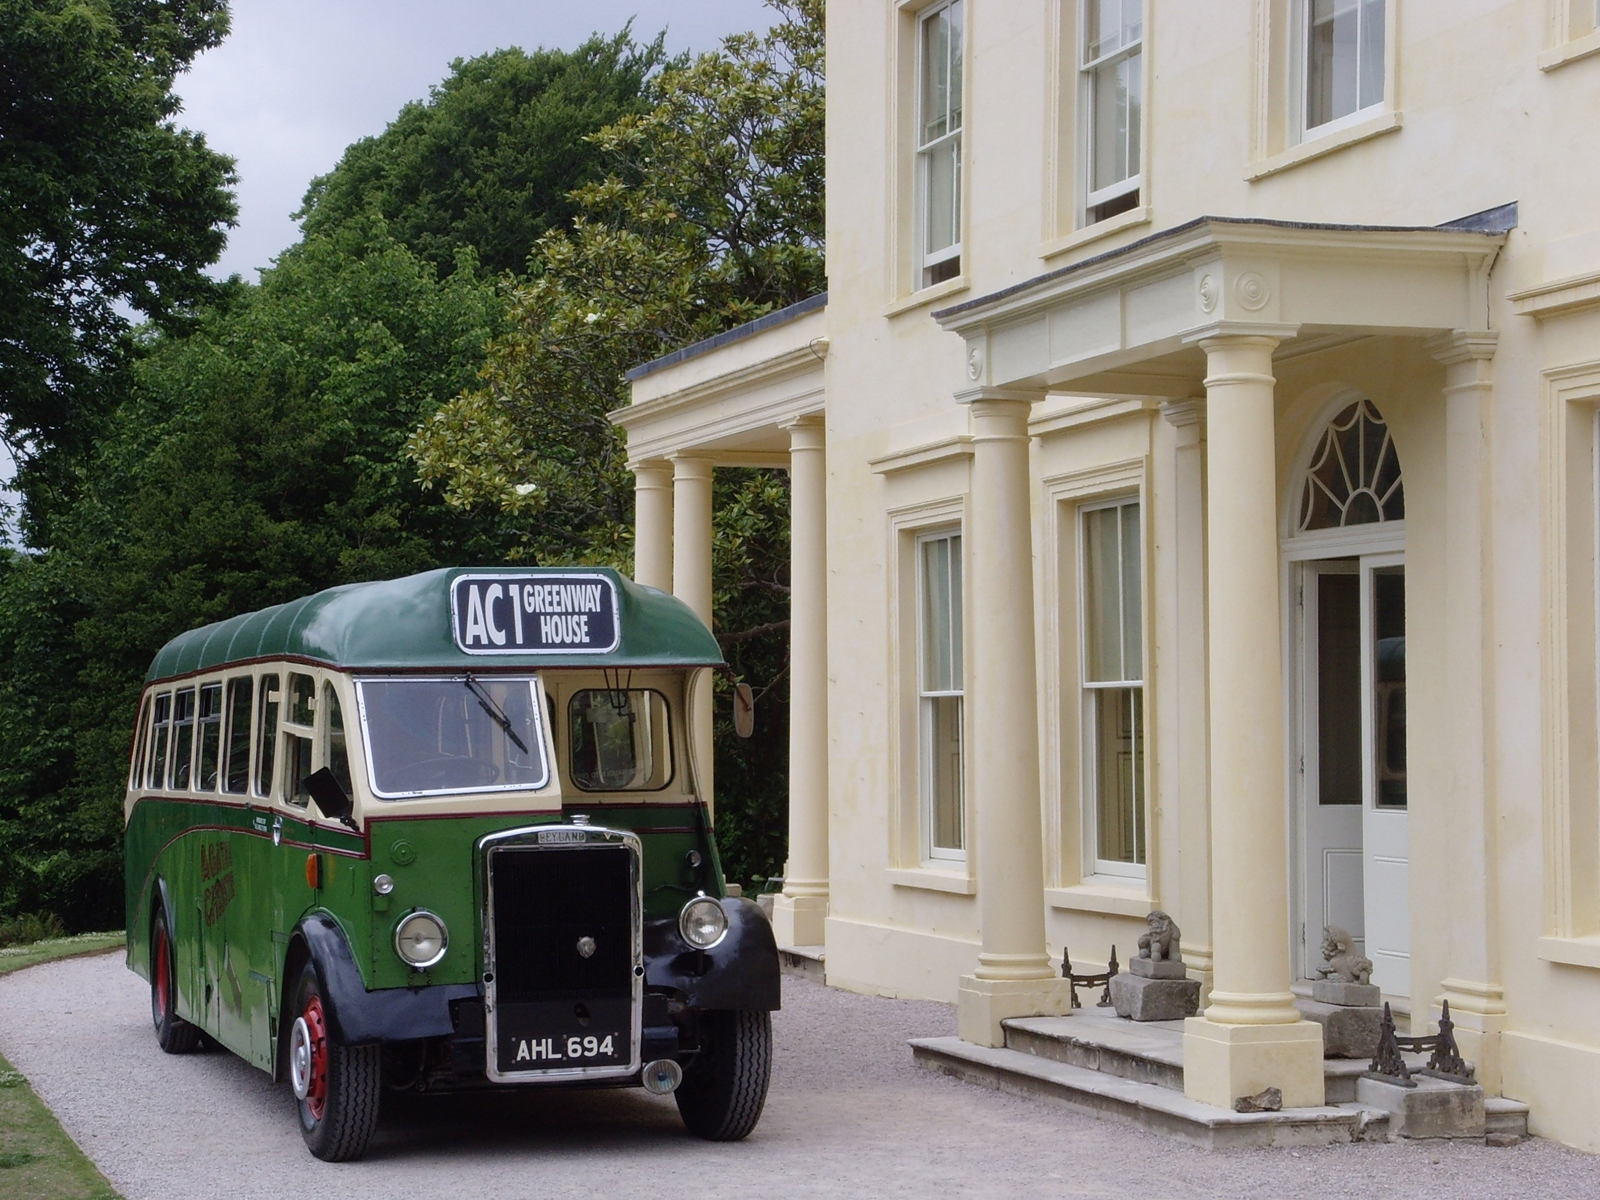 Greenway, holiday home of Torquay born Queen of Crime, Agatha Christie